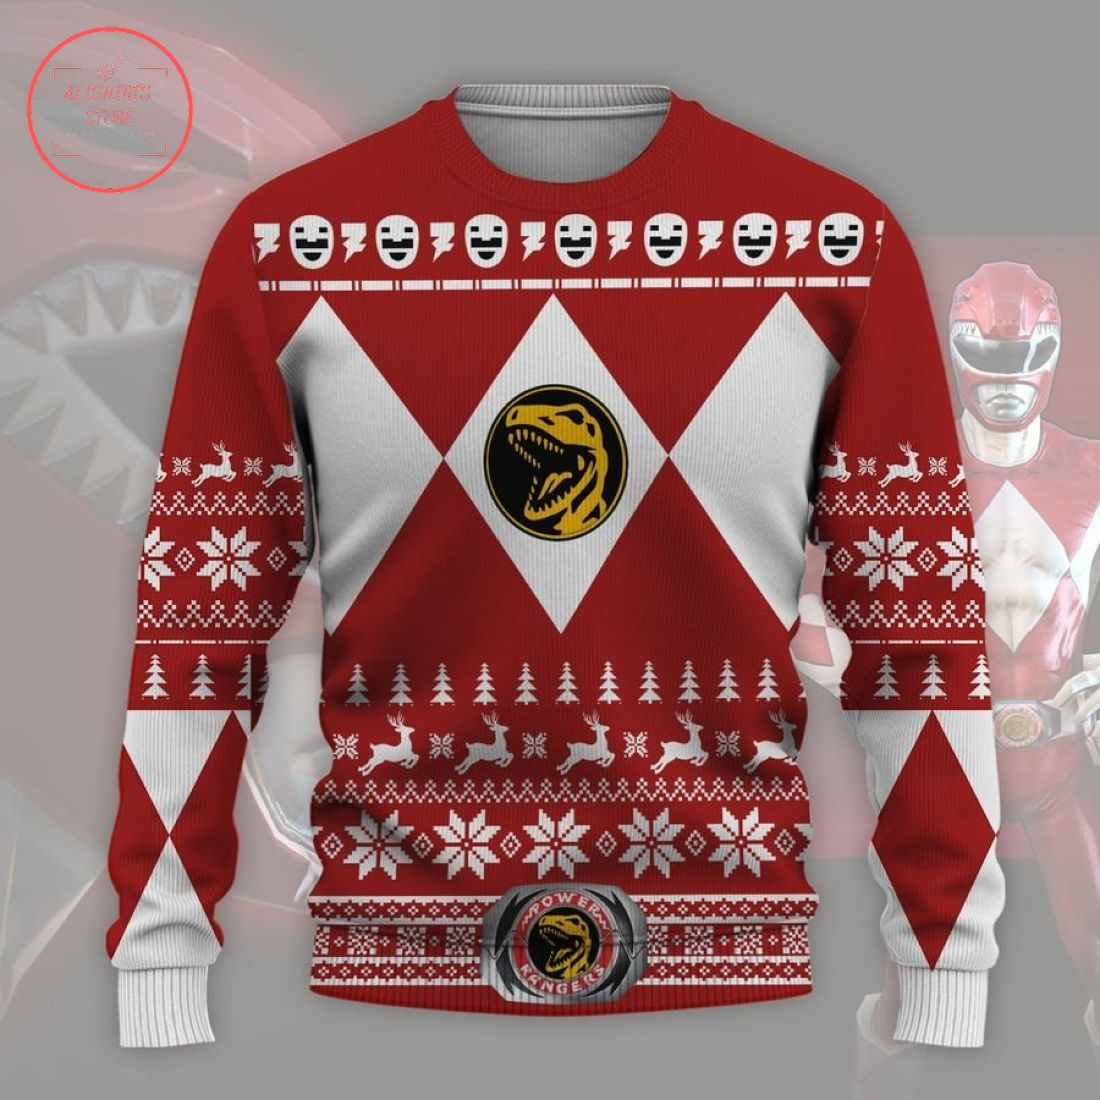 Mighty Morphin Power Rangers Ugly Christmas Sweater